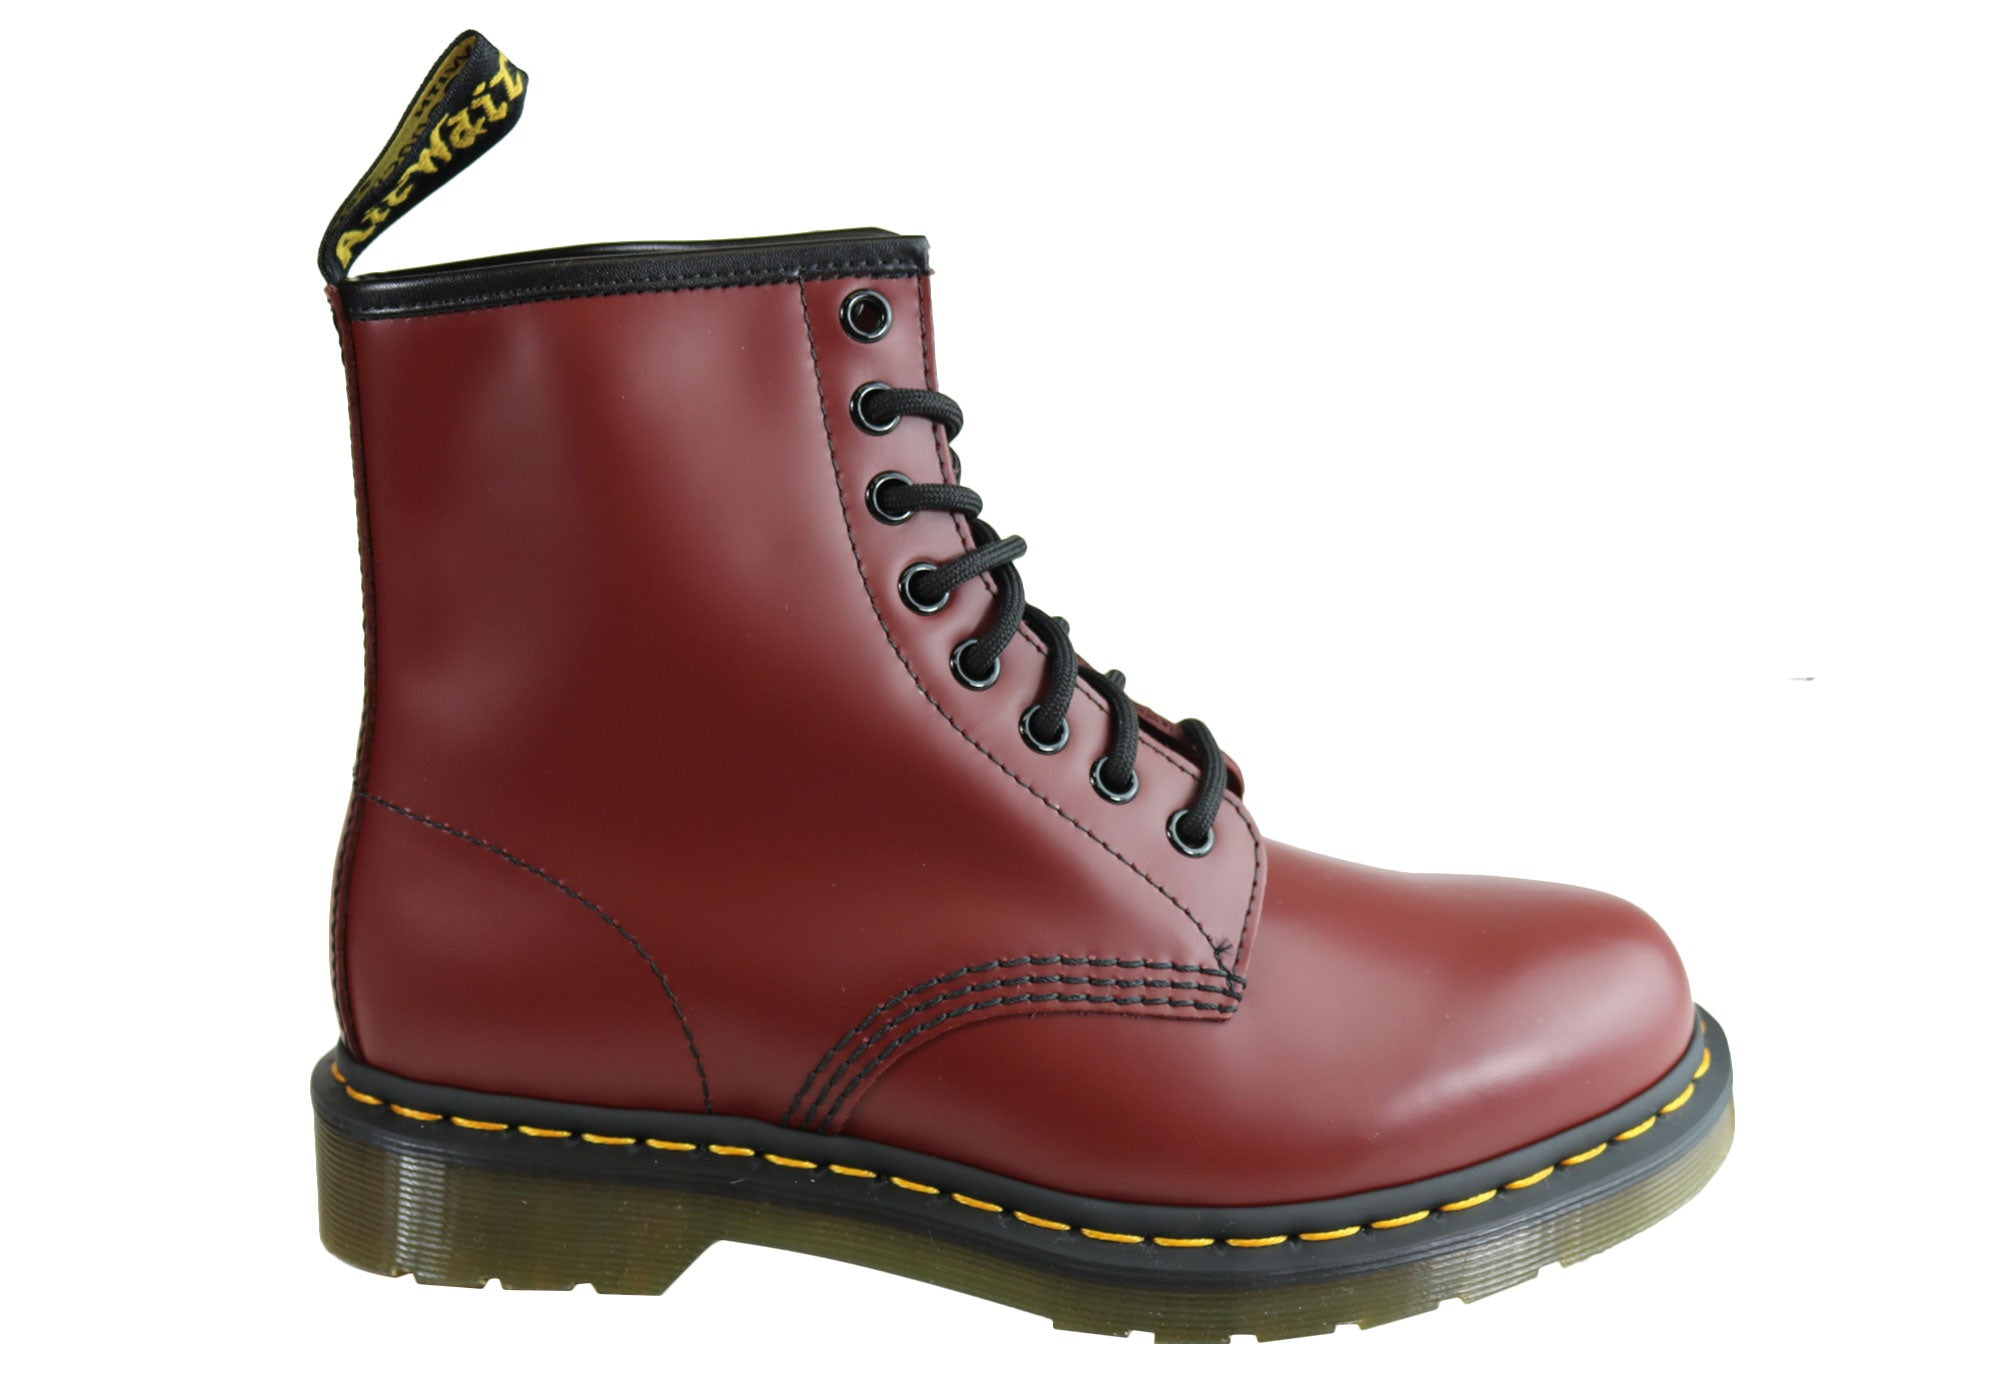 6c9a81c93d9 Details about Dr Martens 1460 Cherry Smooth Unisex Leather Lace Up Fashion  Boots - ShopShoesAU